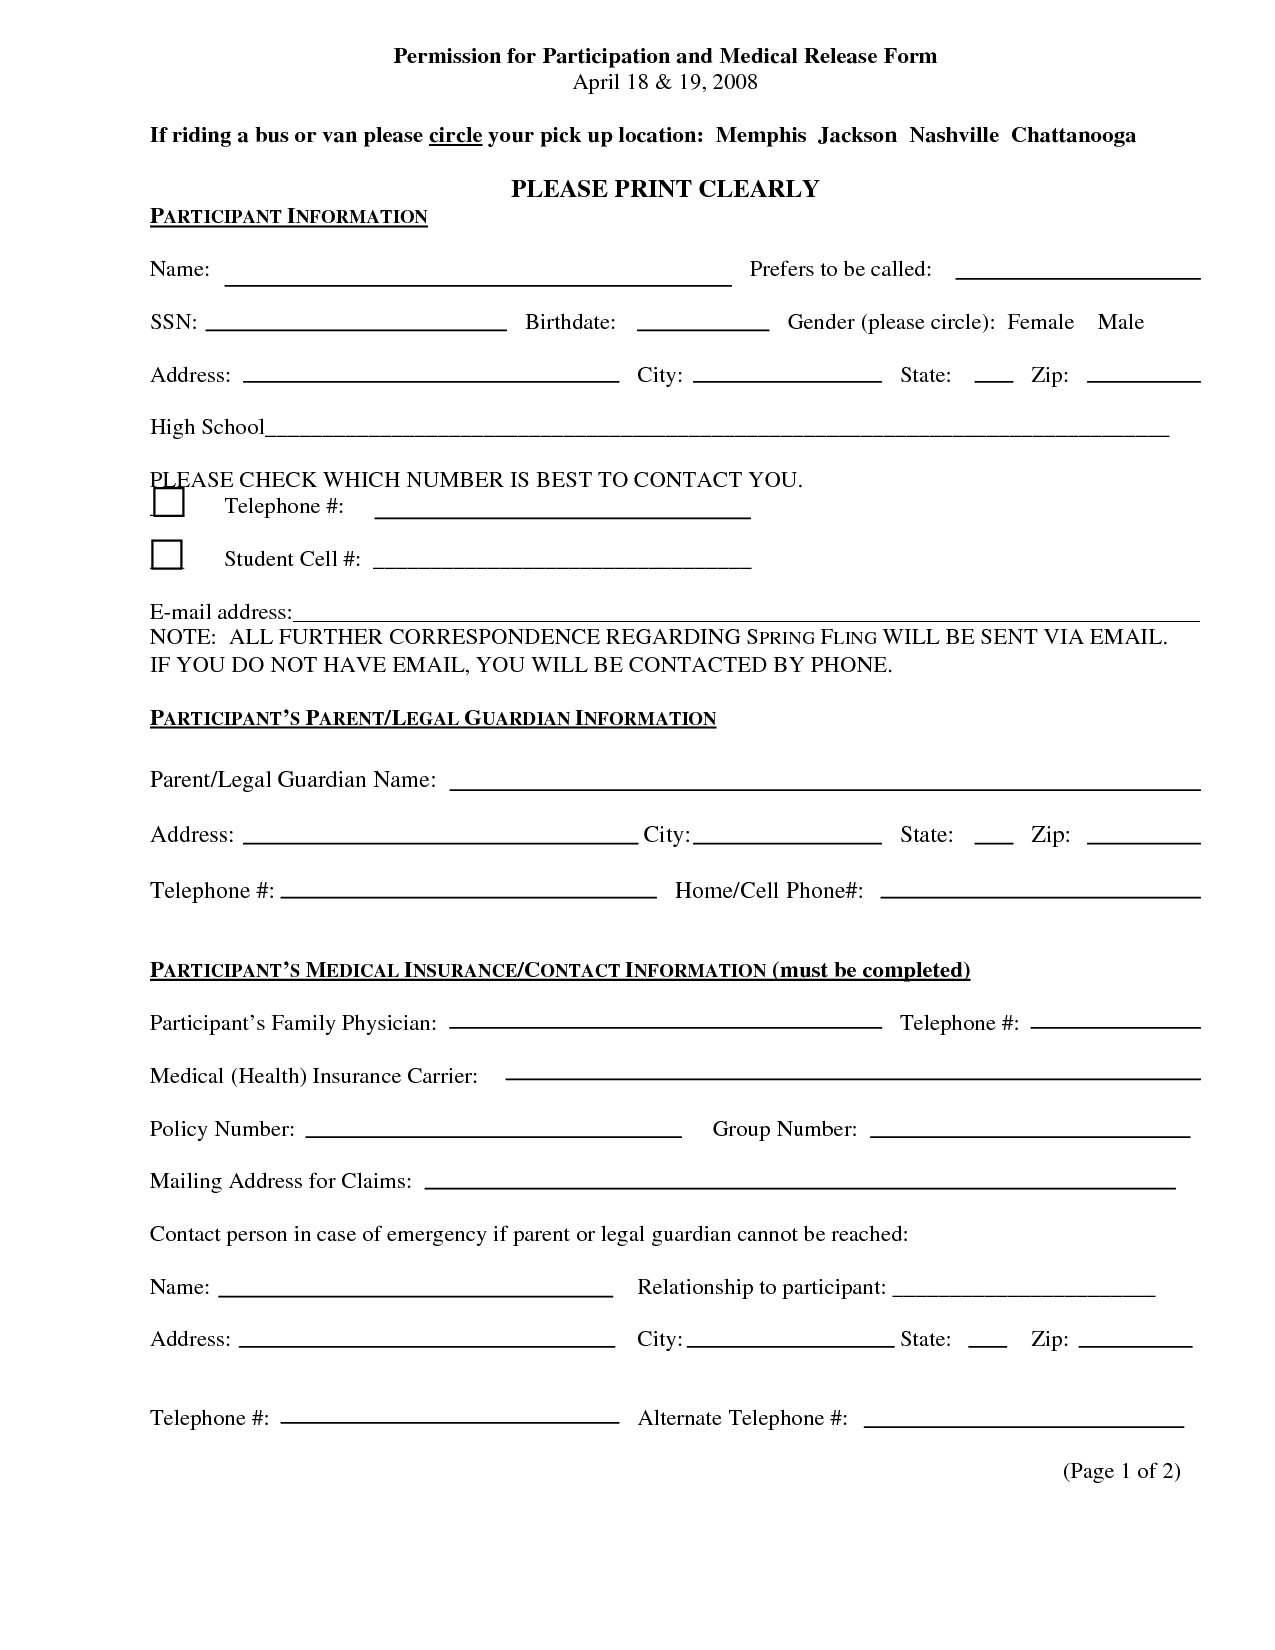 Pin On Pain No Gain - Free Printable Medical Release Form